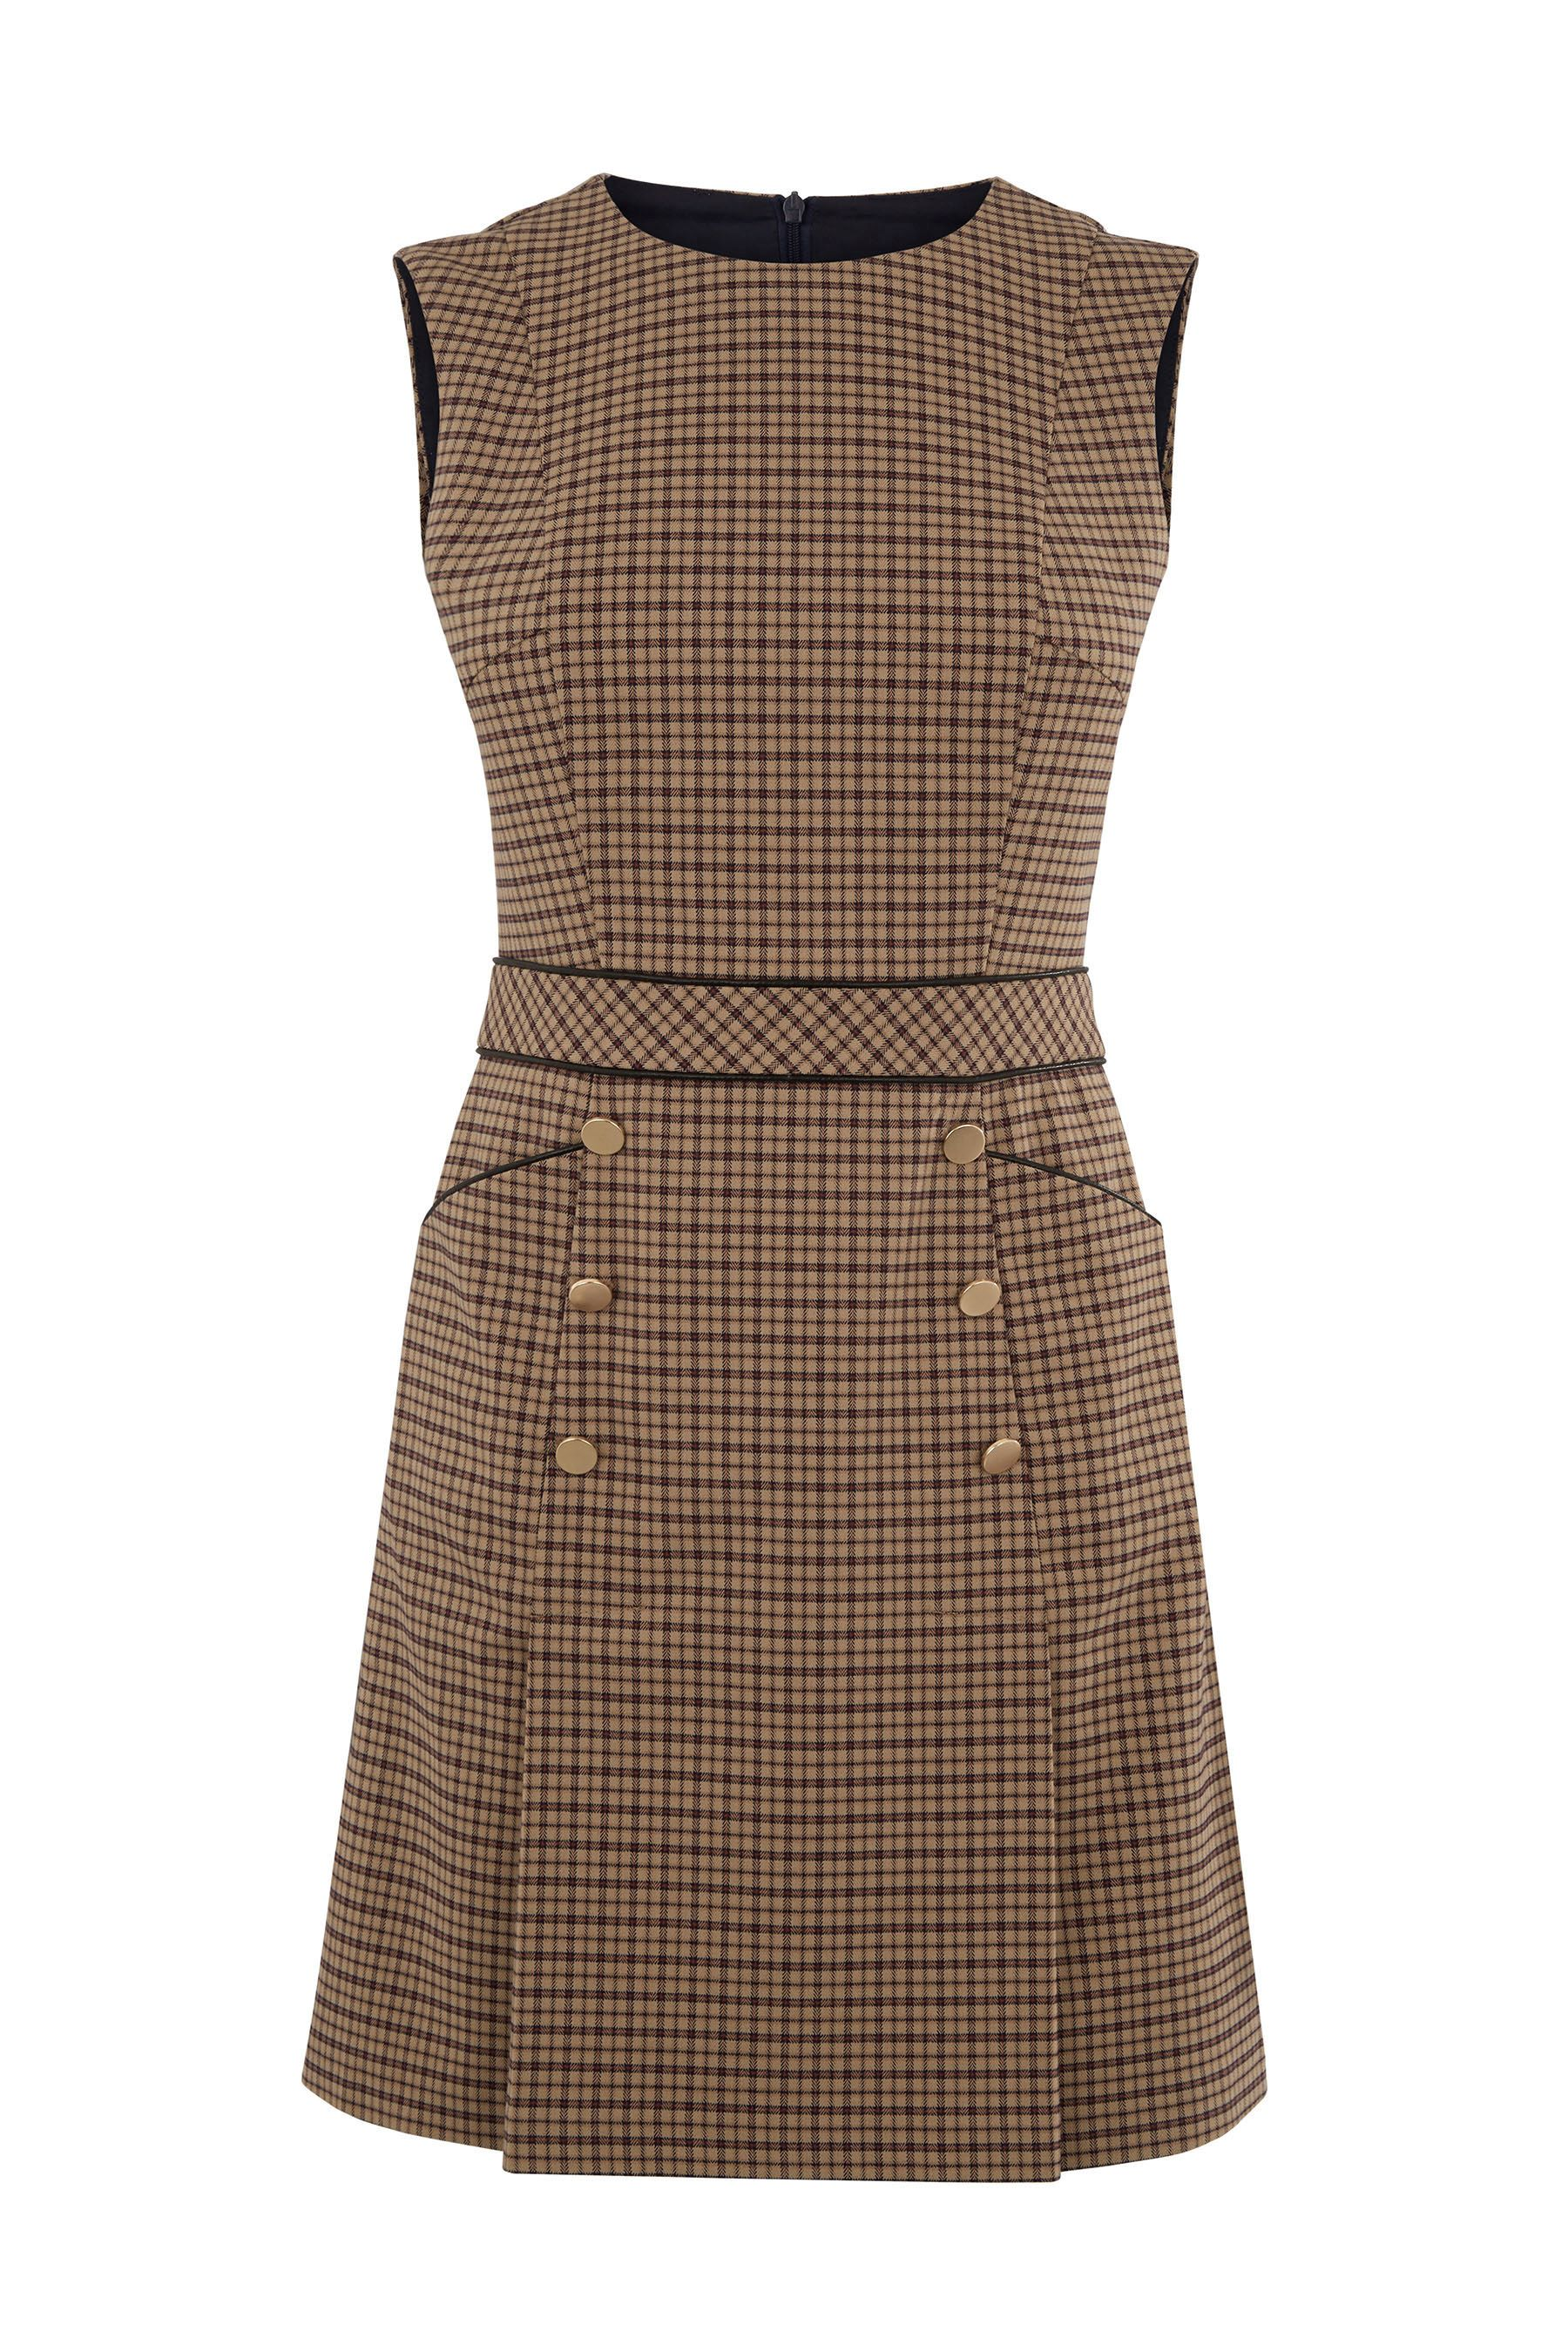 a1b00bff972 Womens Oasis Brown Heritage Check Pinafore Dress - Black